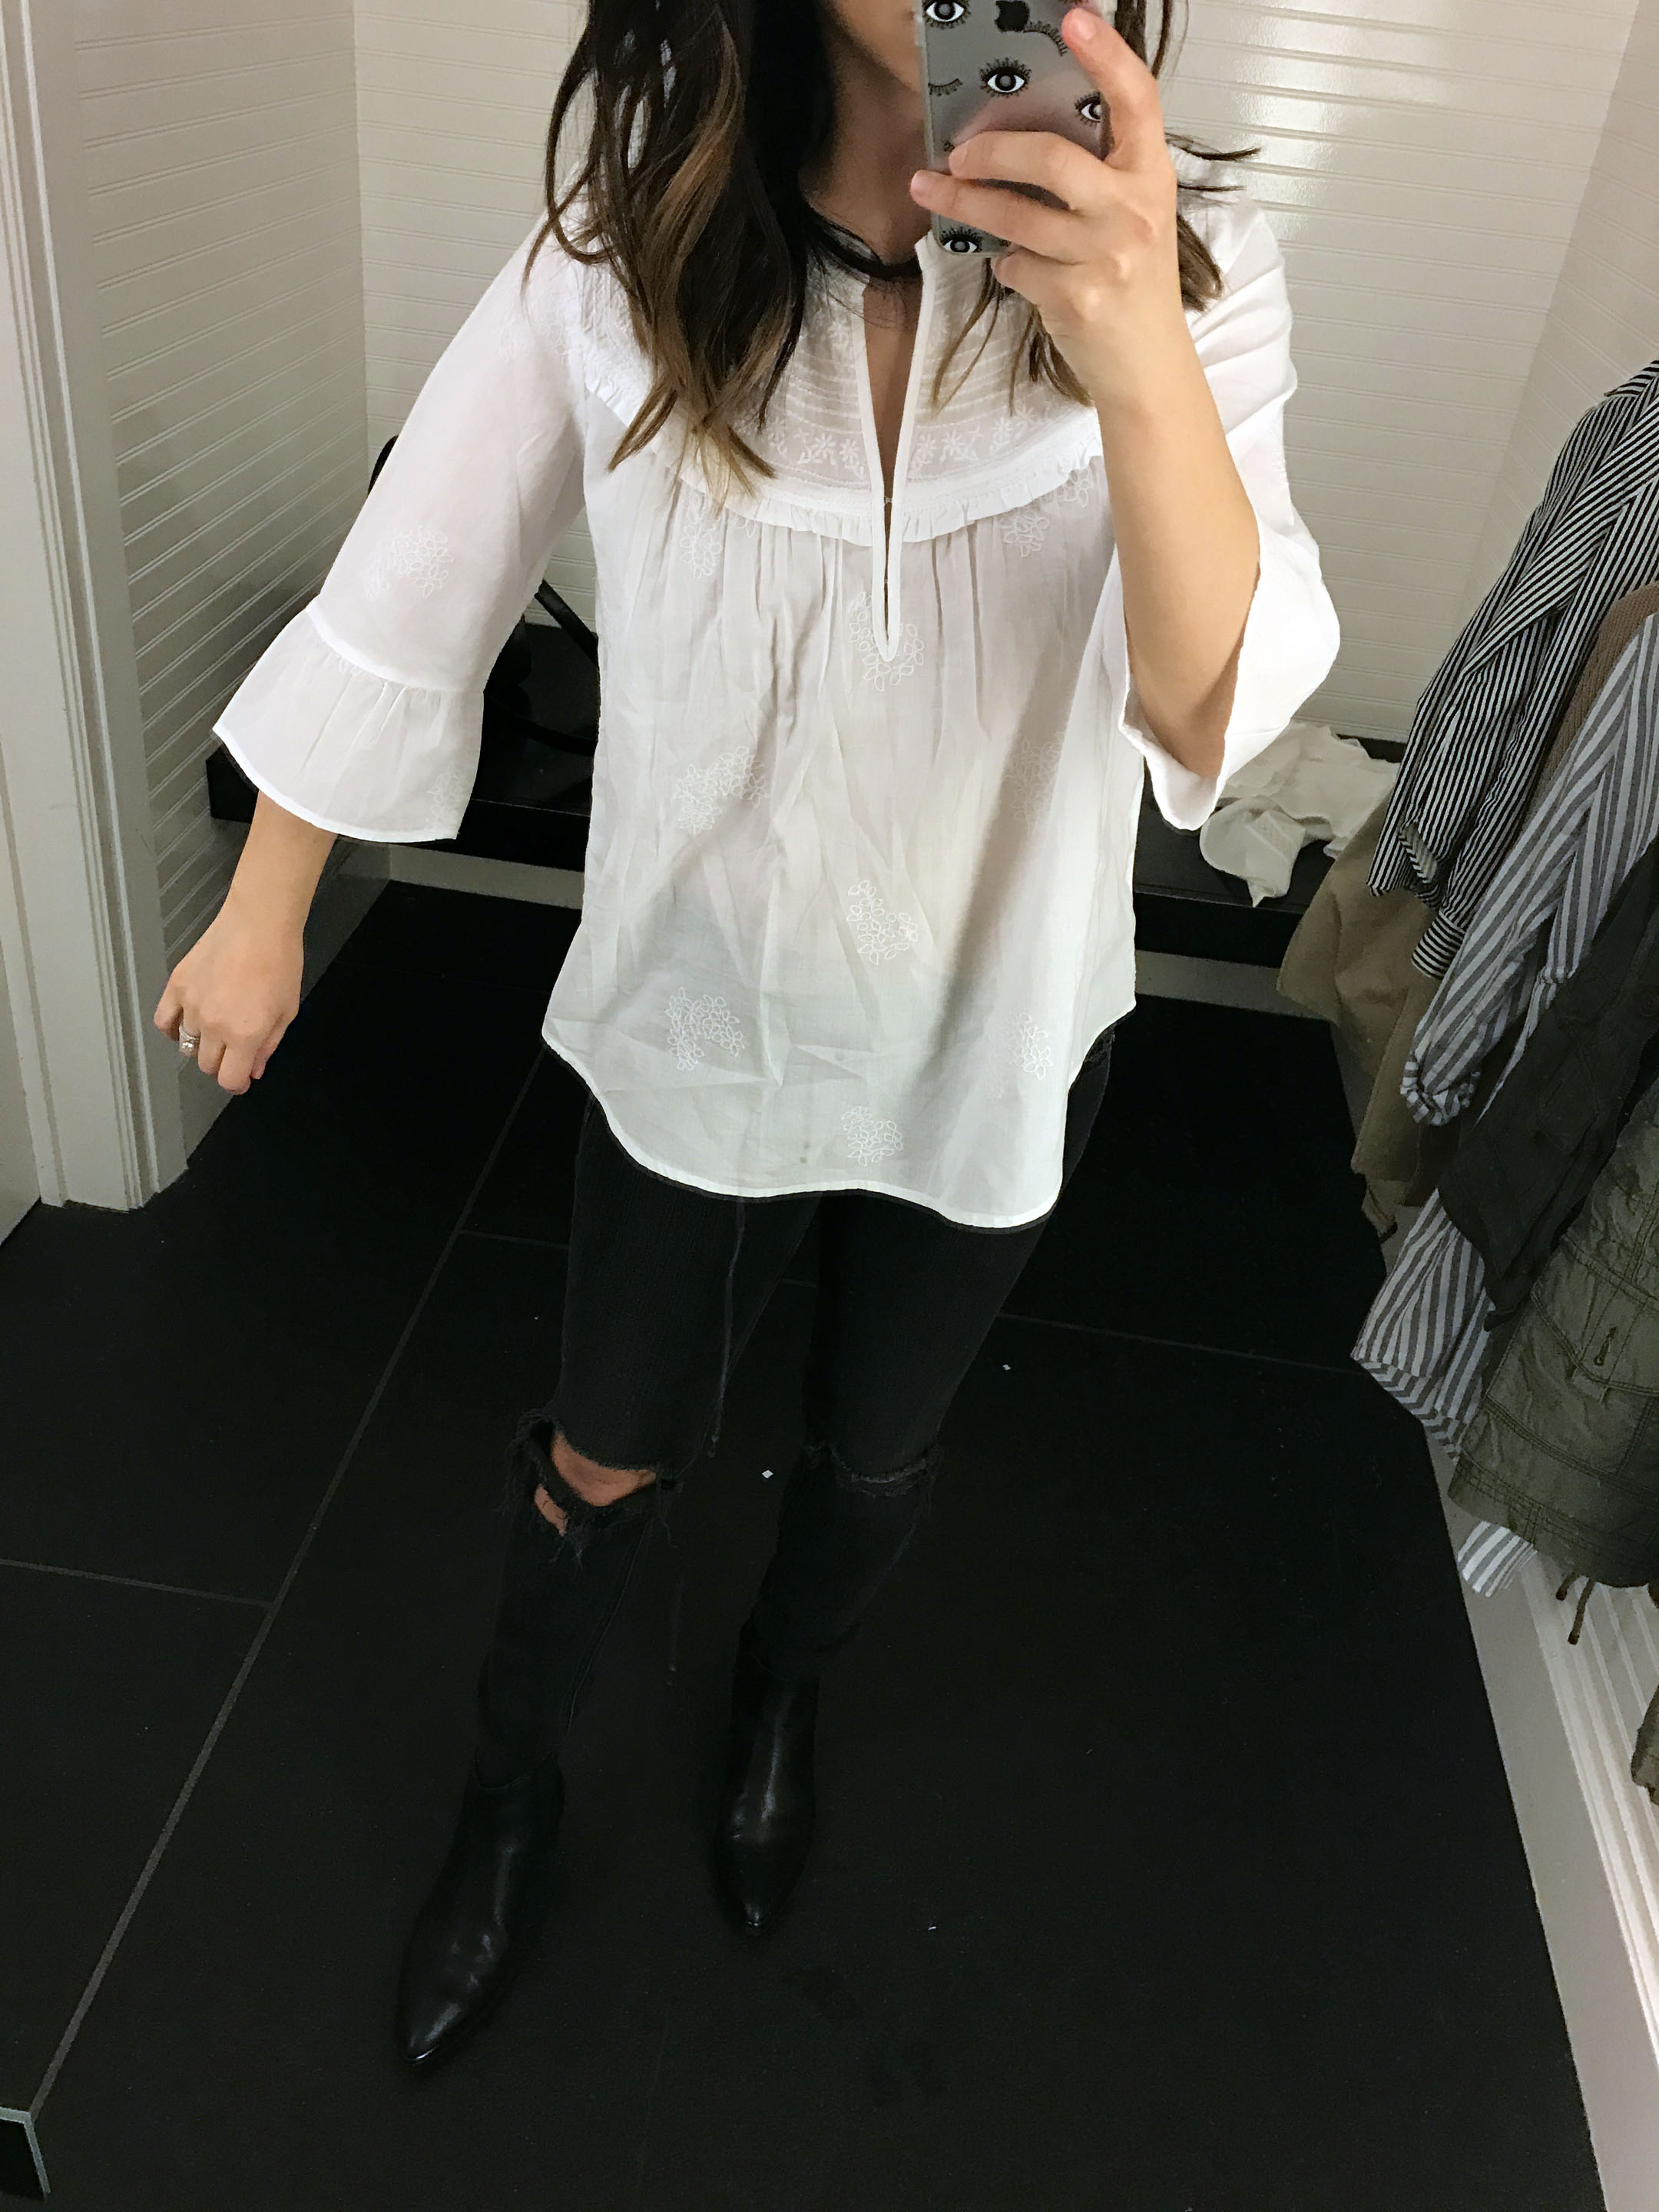 Abercrombie & Fitch embroidered blouse 1